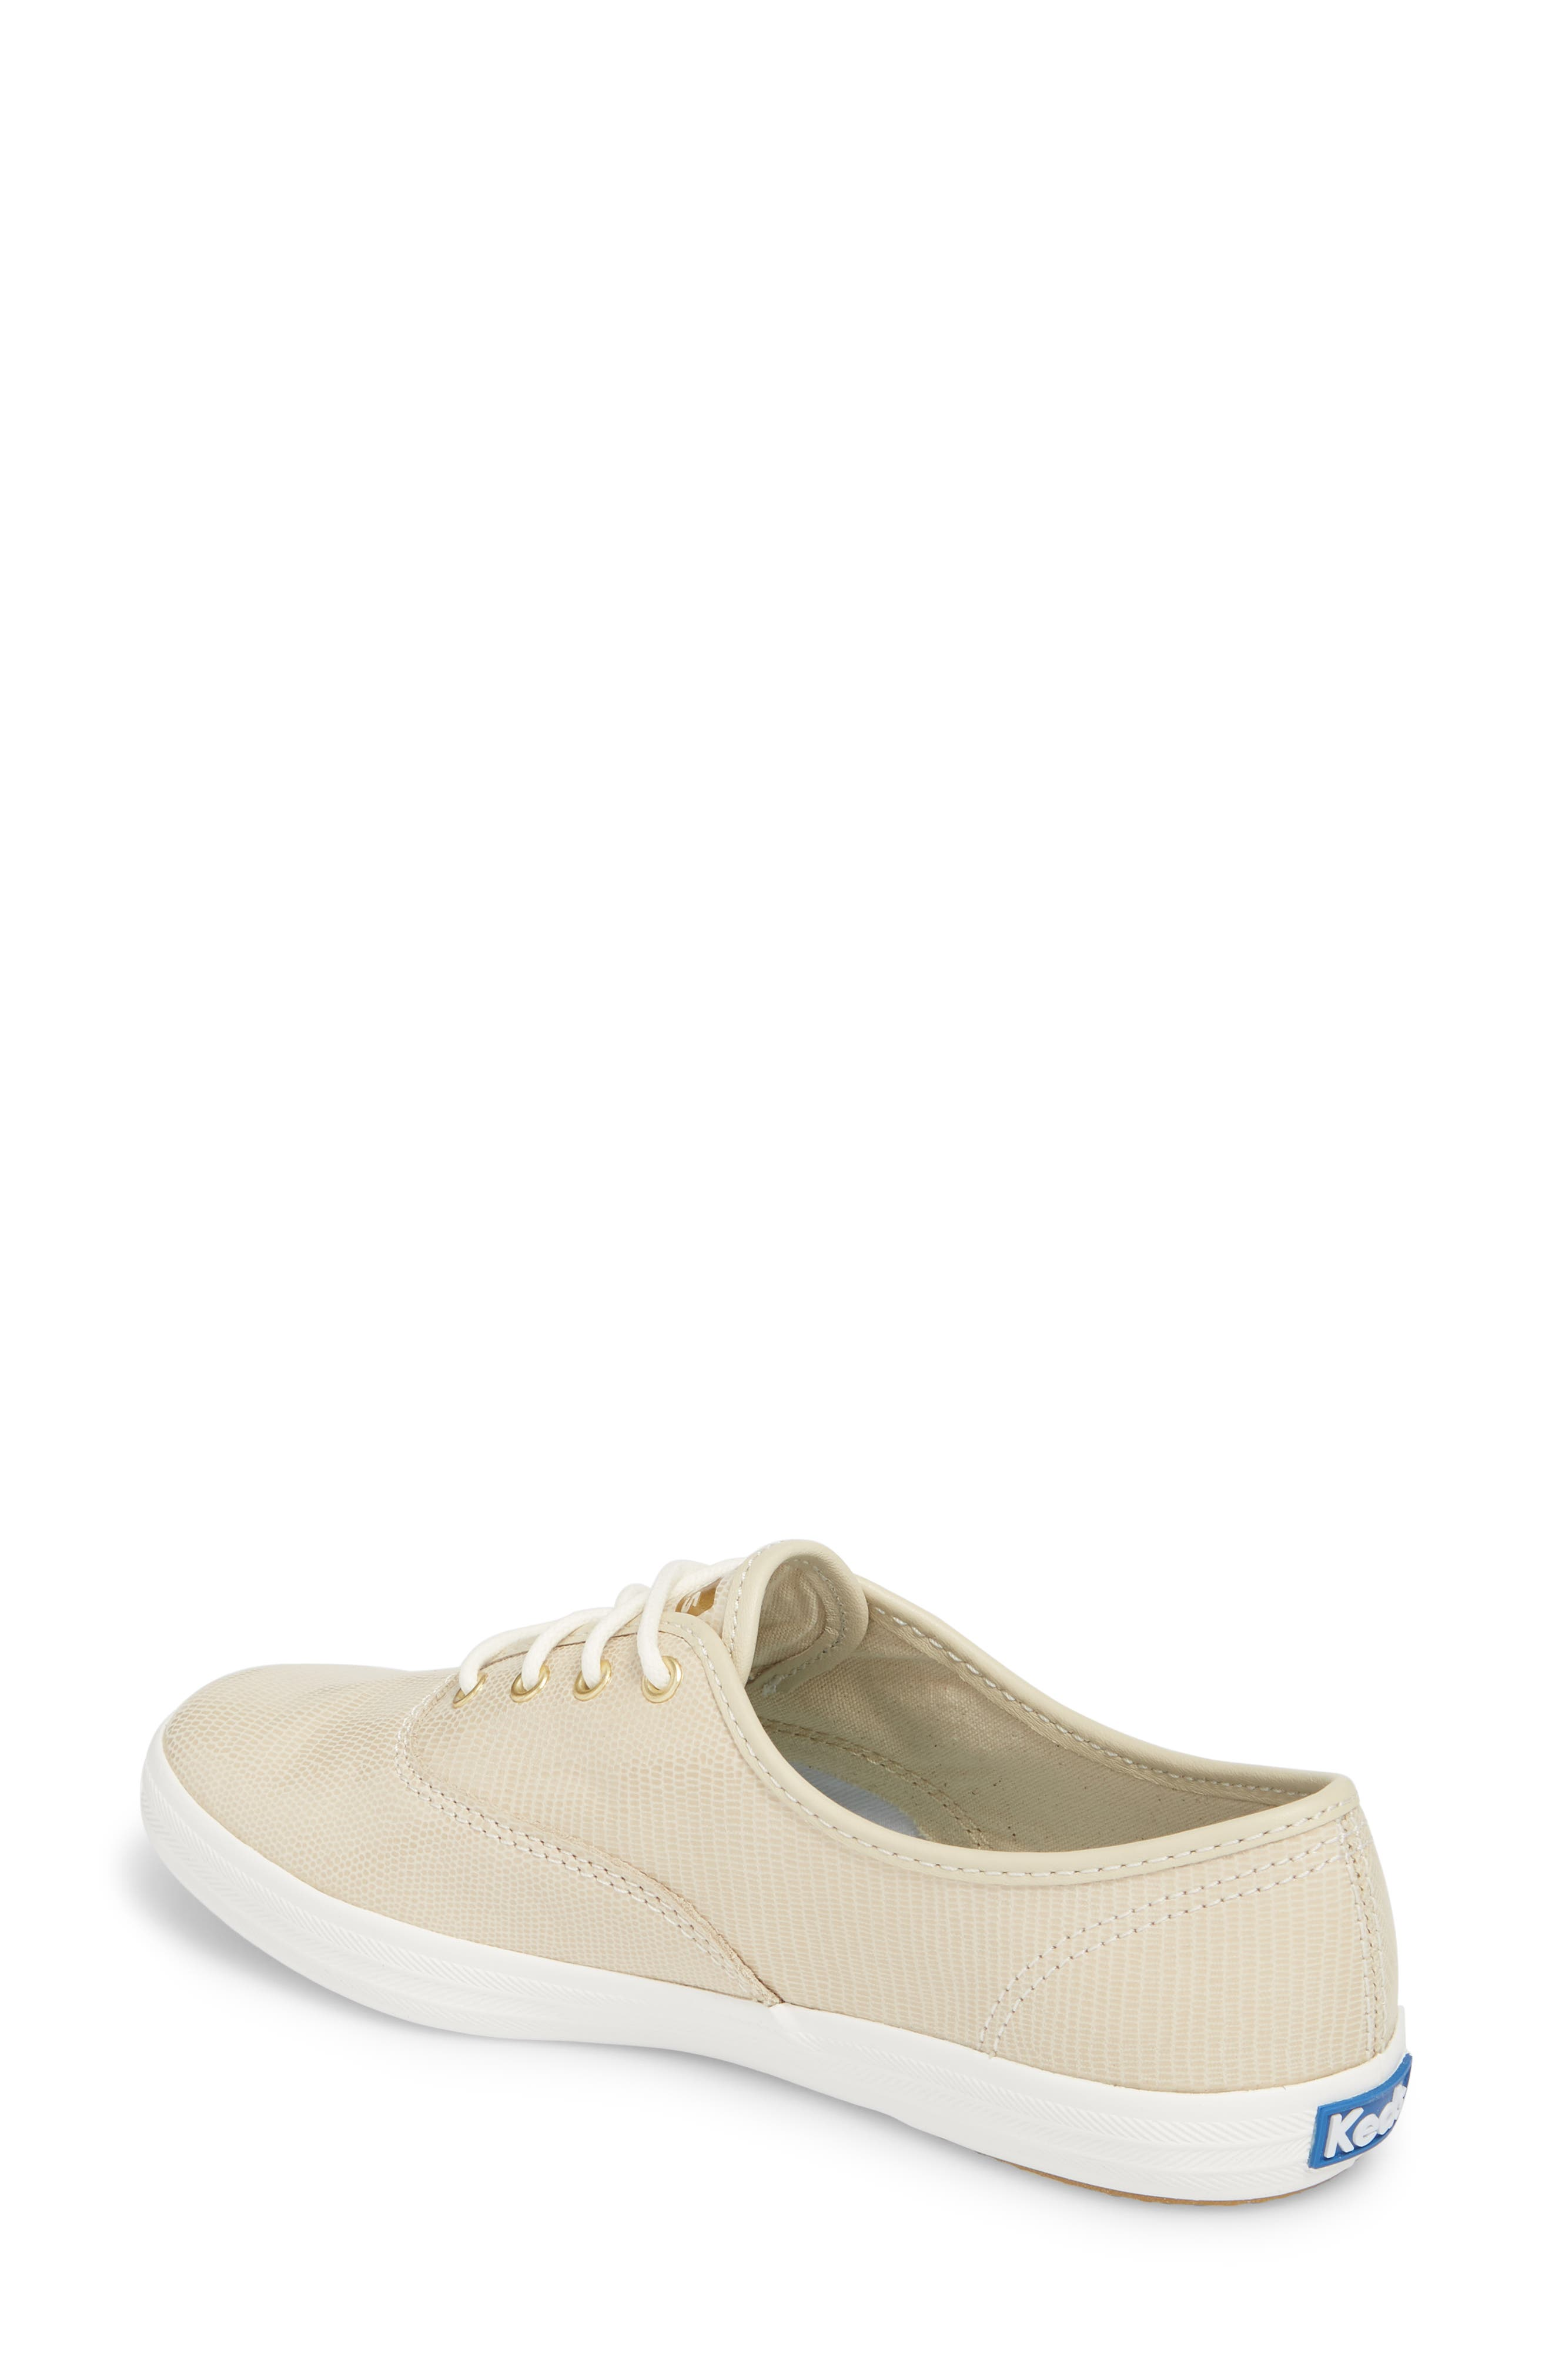 Champion Pretty Leather Sneaker,                             Alternate thumbnail 2, color,                             Ivory